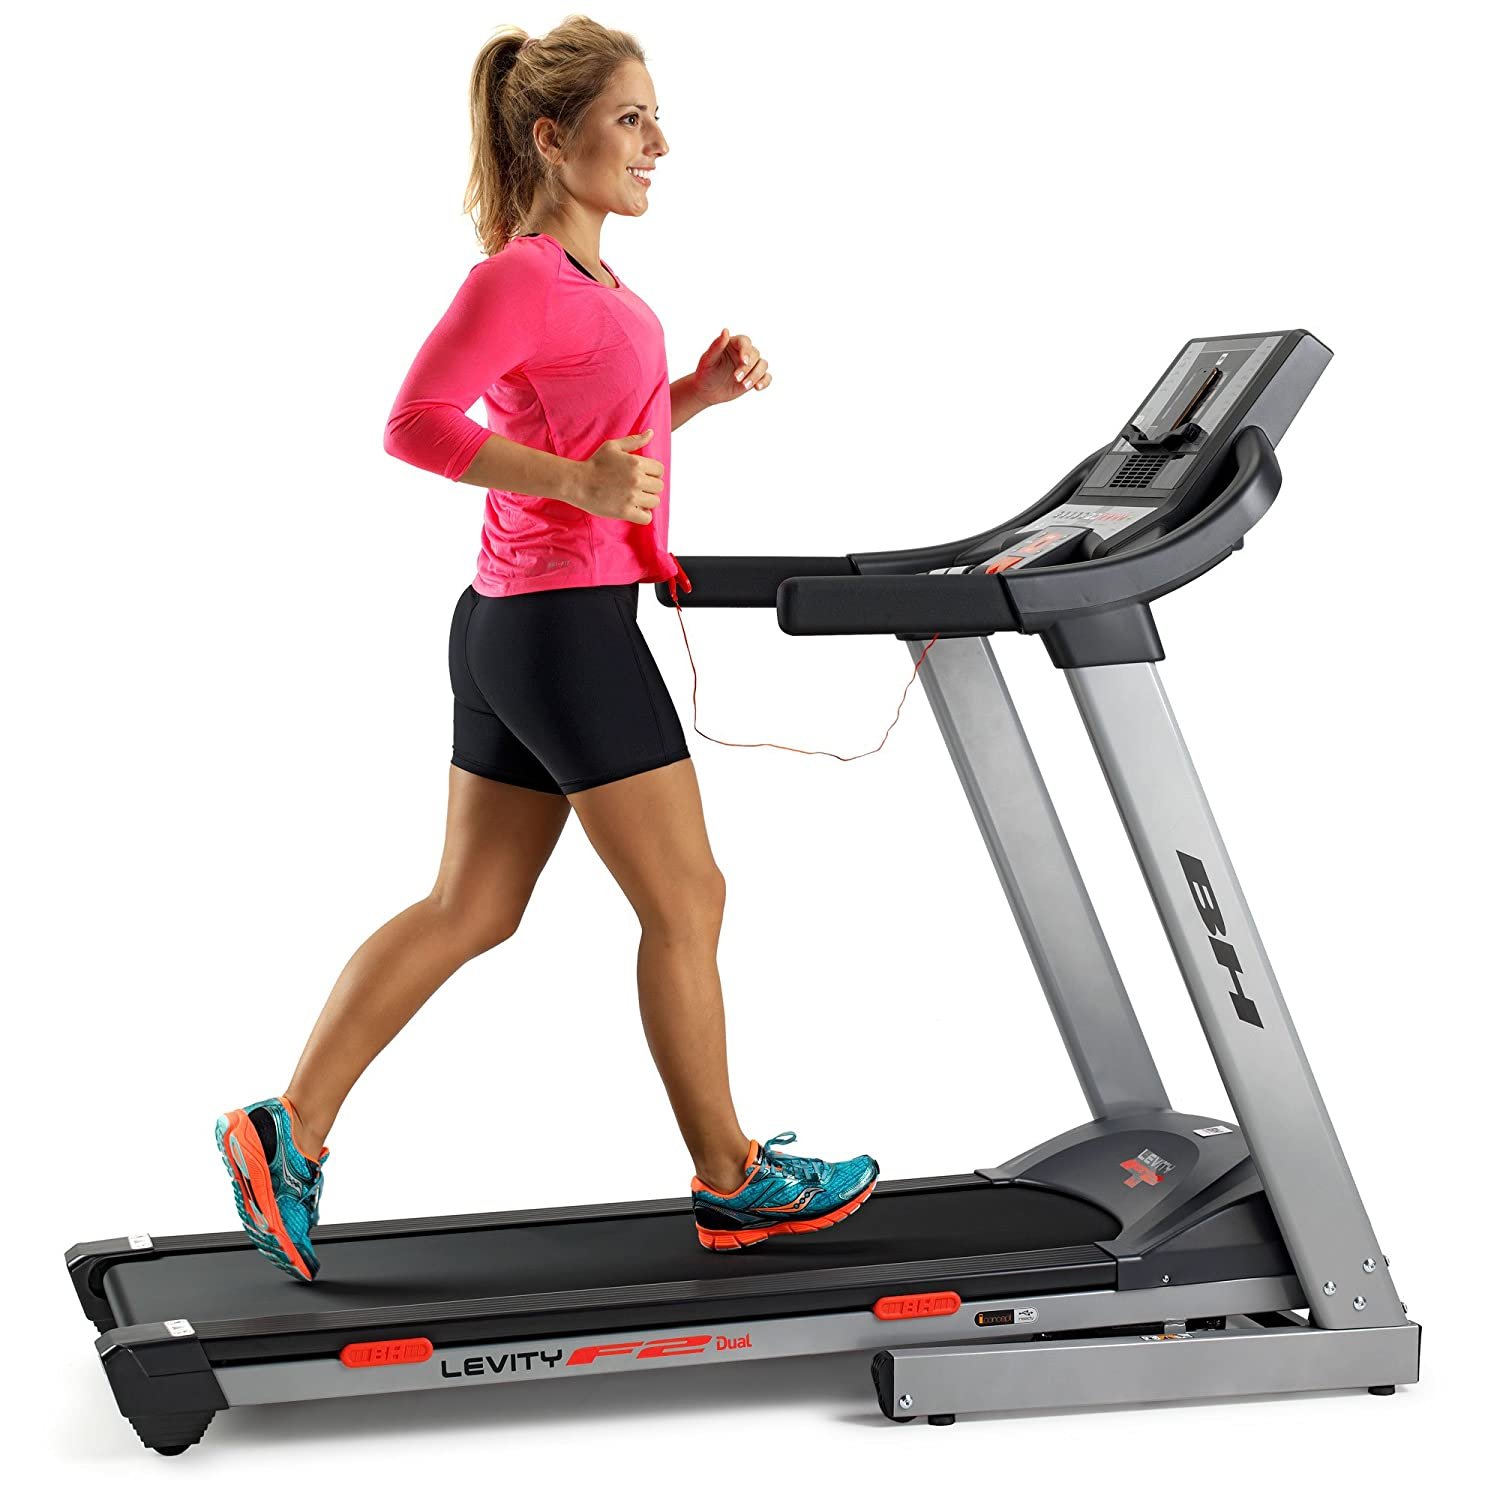 BH Fitness Levity F2 Dual 450 x 1350 mm 18 km/h Treadmill ...